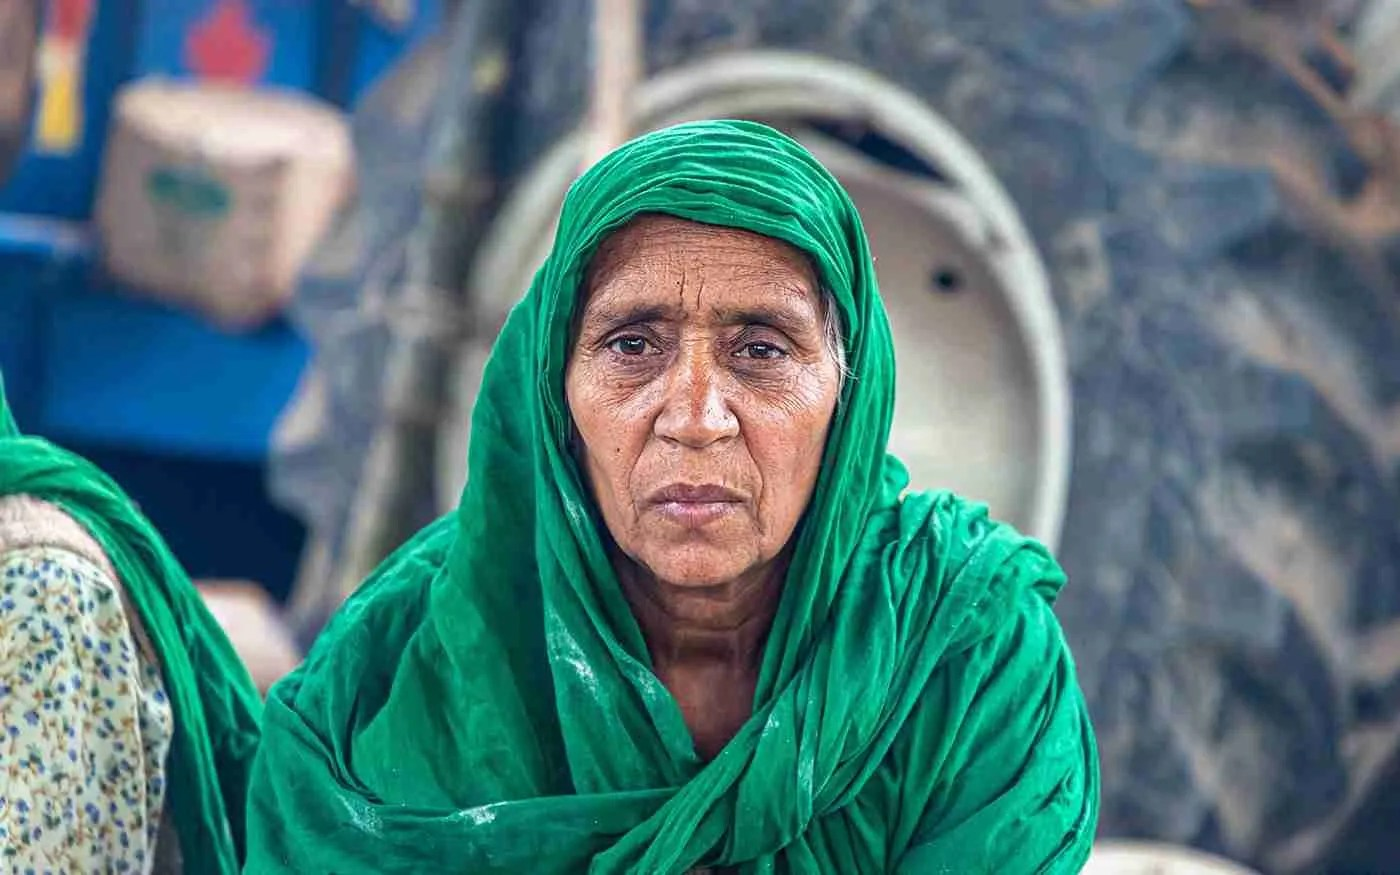 New Delhi, India, December 25, 2020 –Portrait of a lady farmer during the farmers protest at Singhu border